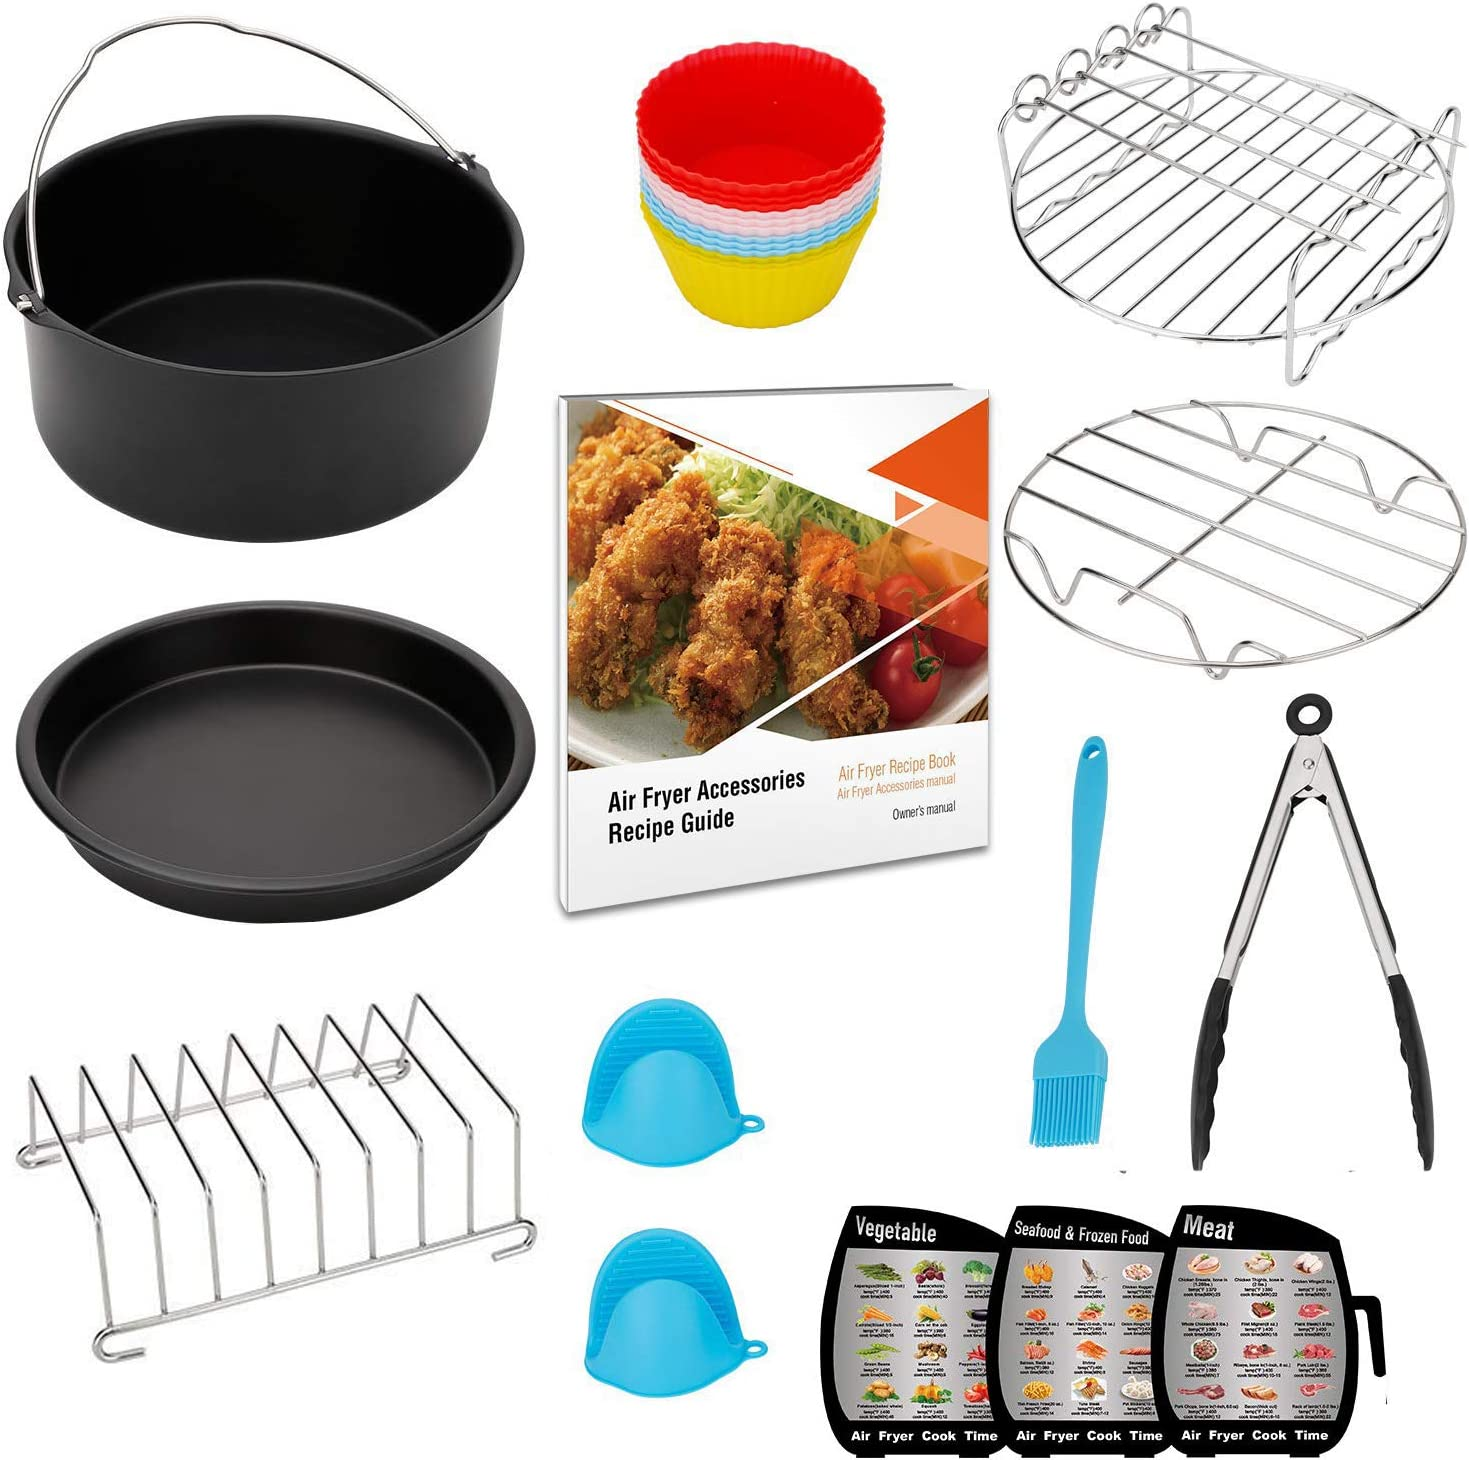 Deluxe Se Xl Air Fryer Accessories Xl For Power Airfryer Xl Gowise And Phillips